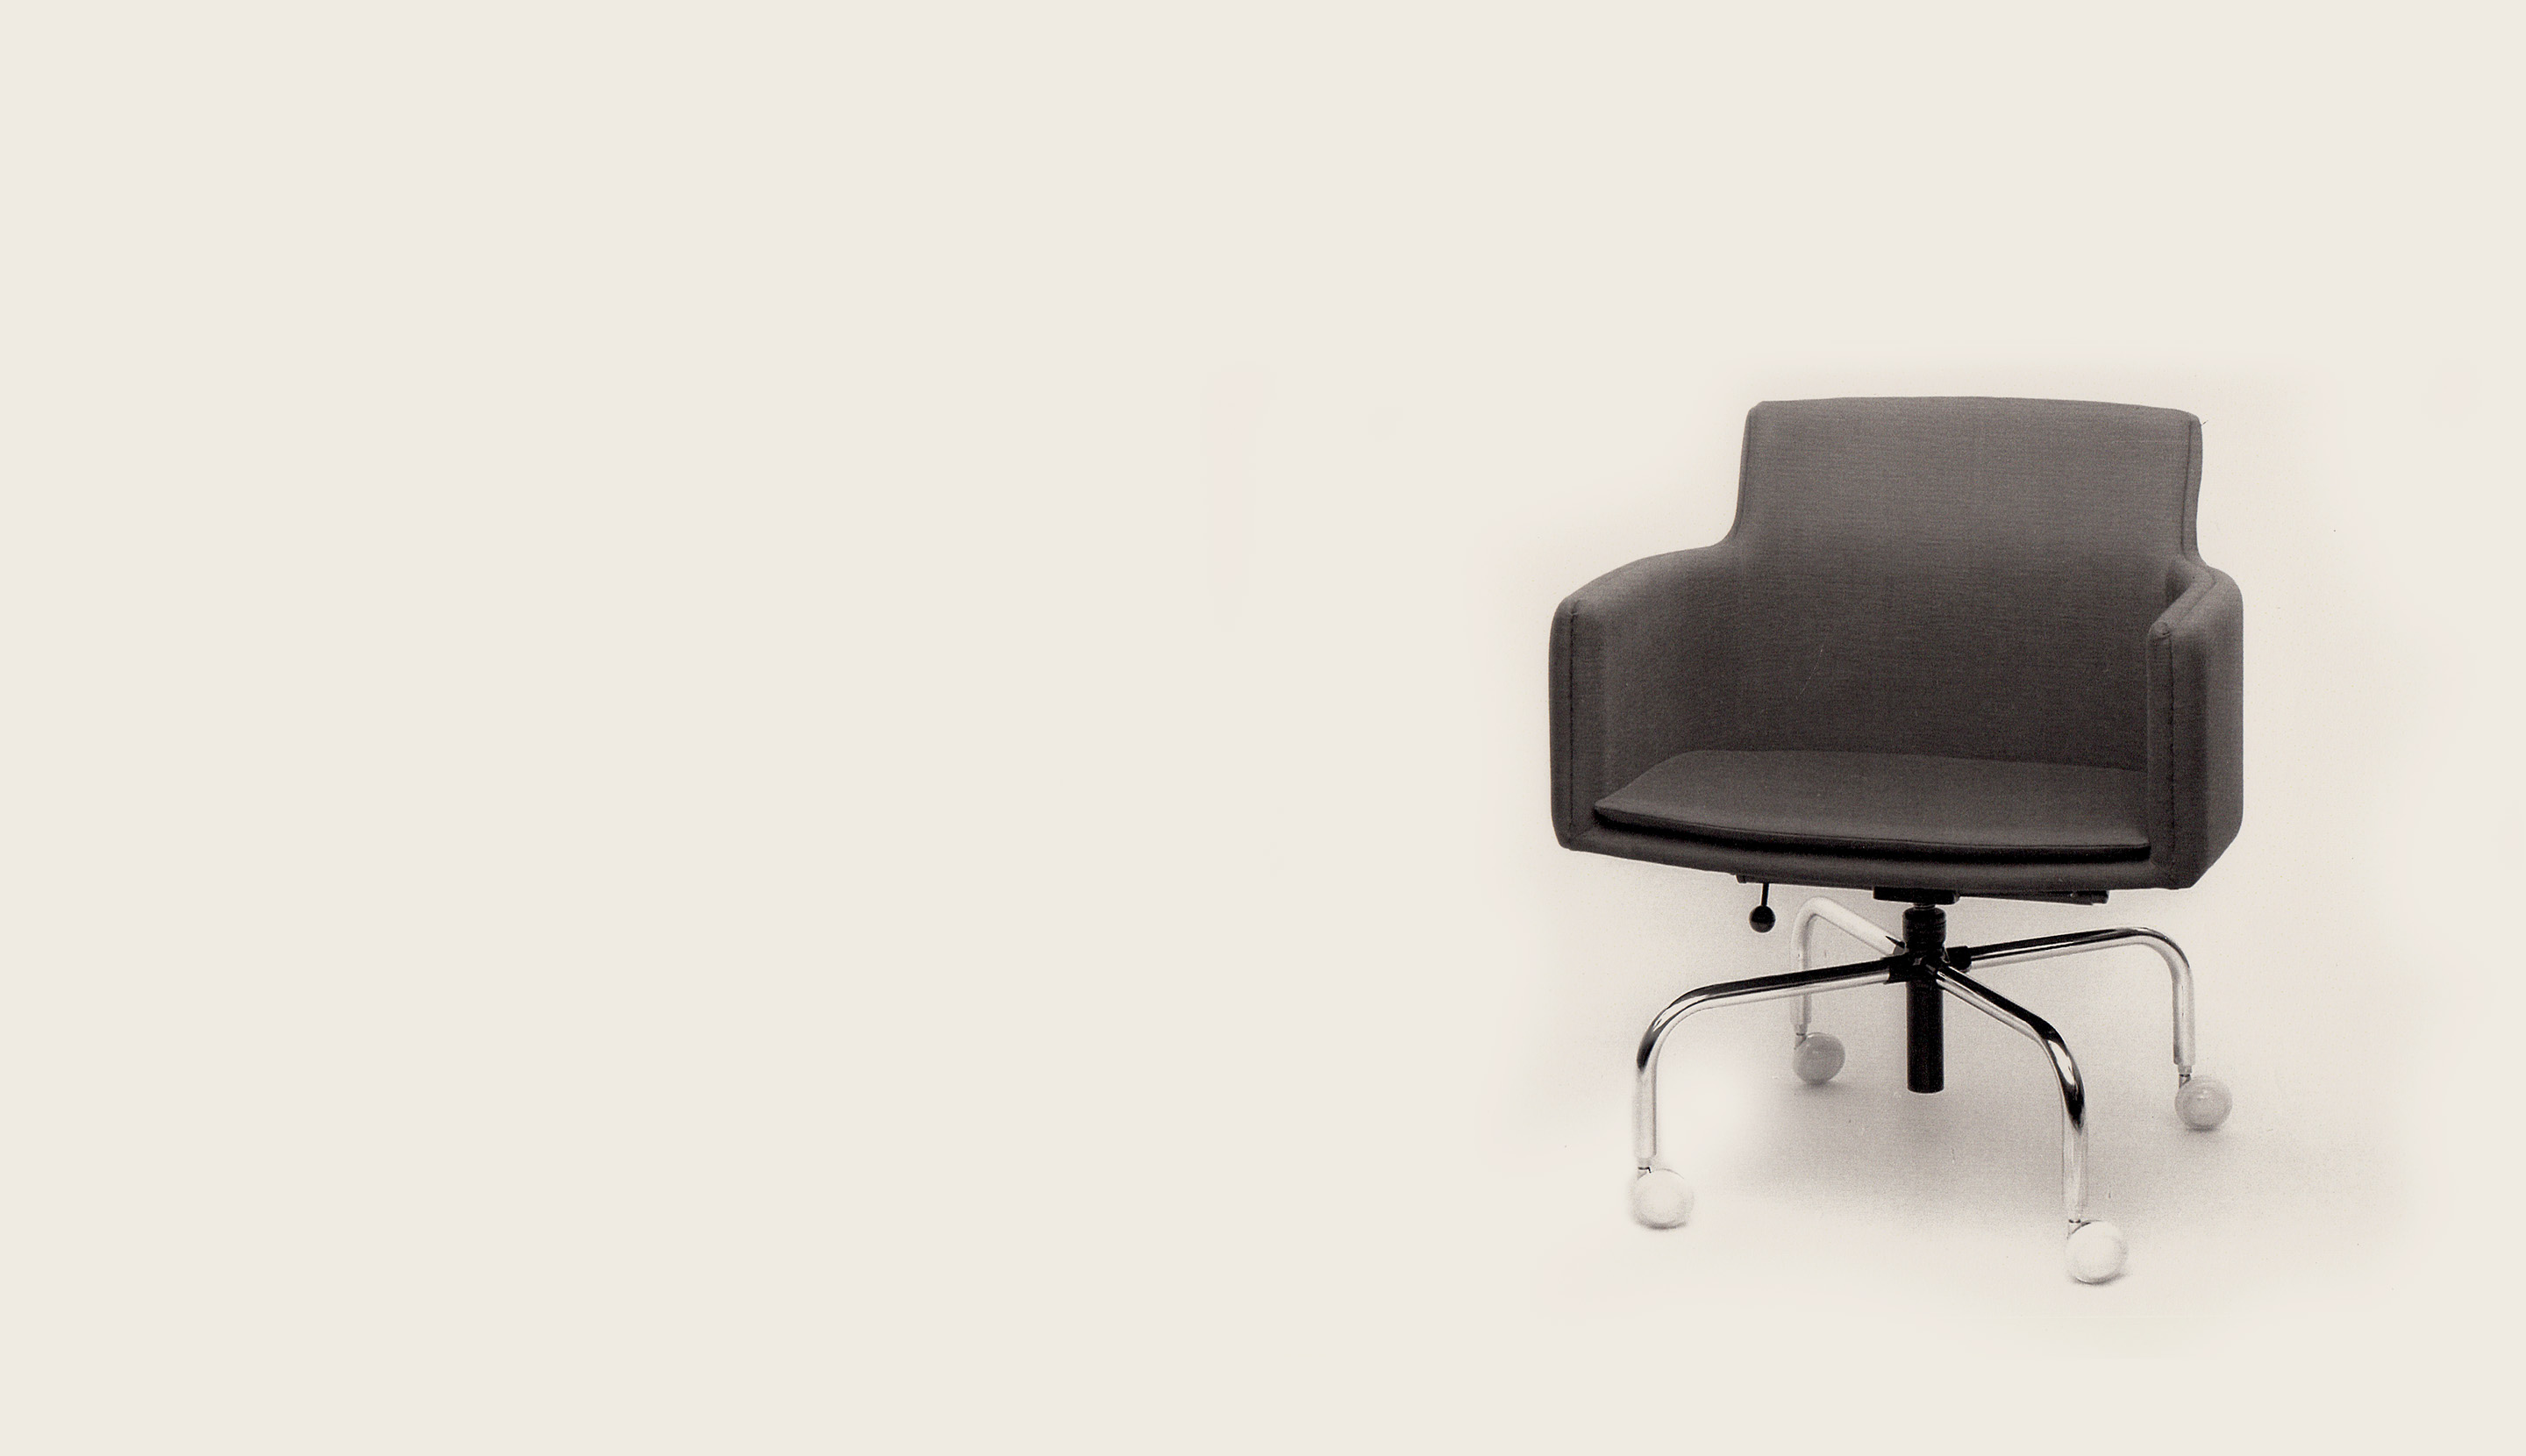 bodilkjaer_officeunits_chair